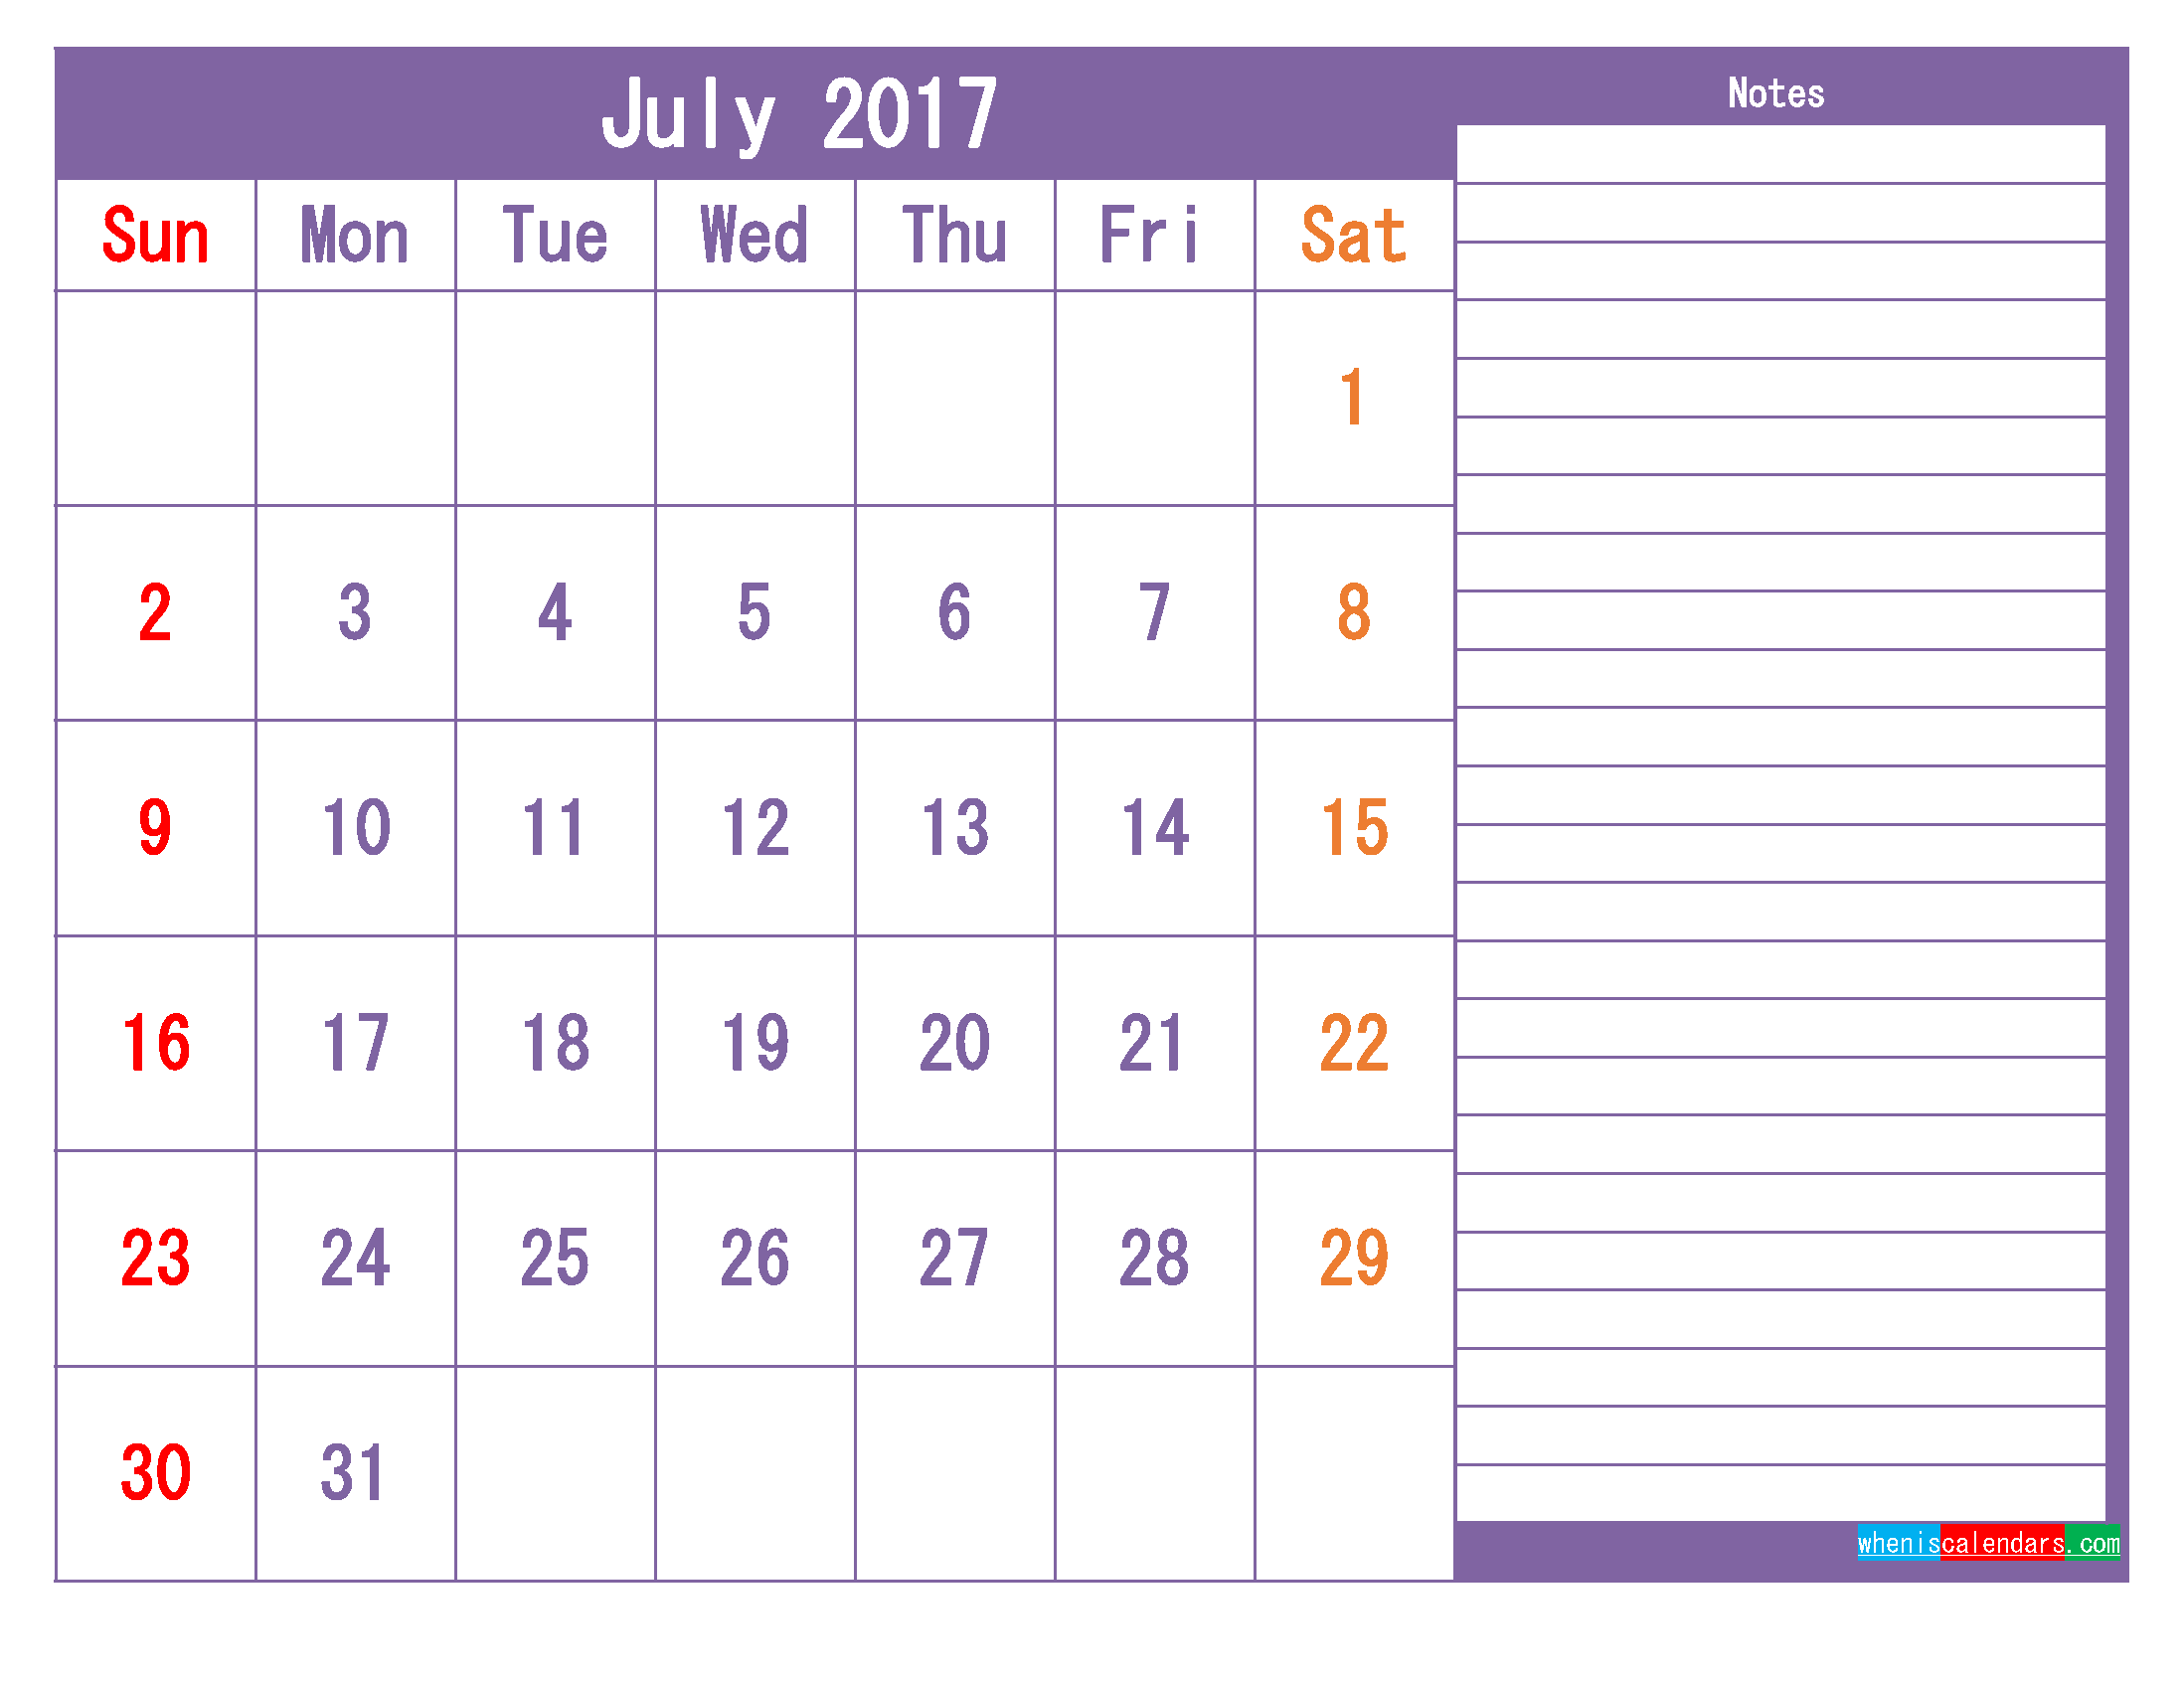 July 2017 Printable Calendar Template as PDF and PNG